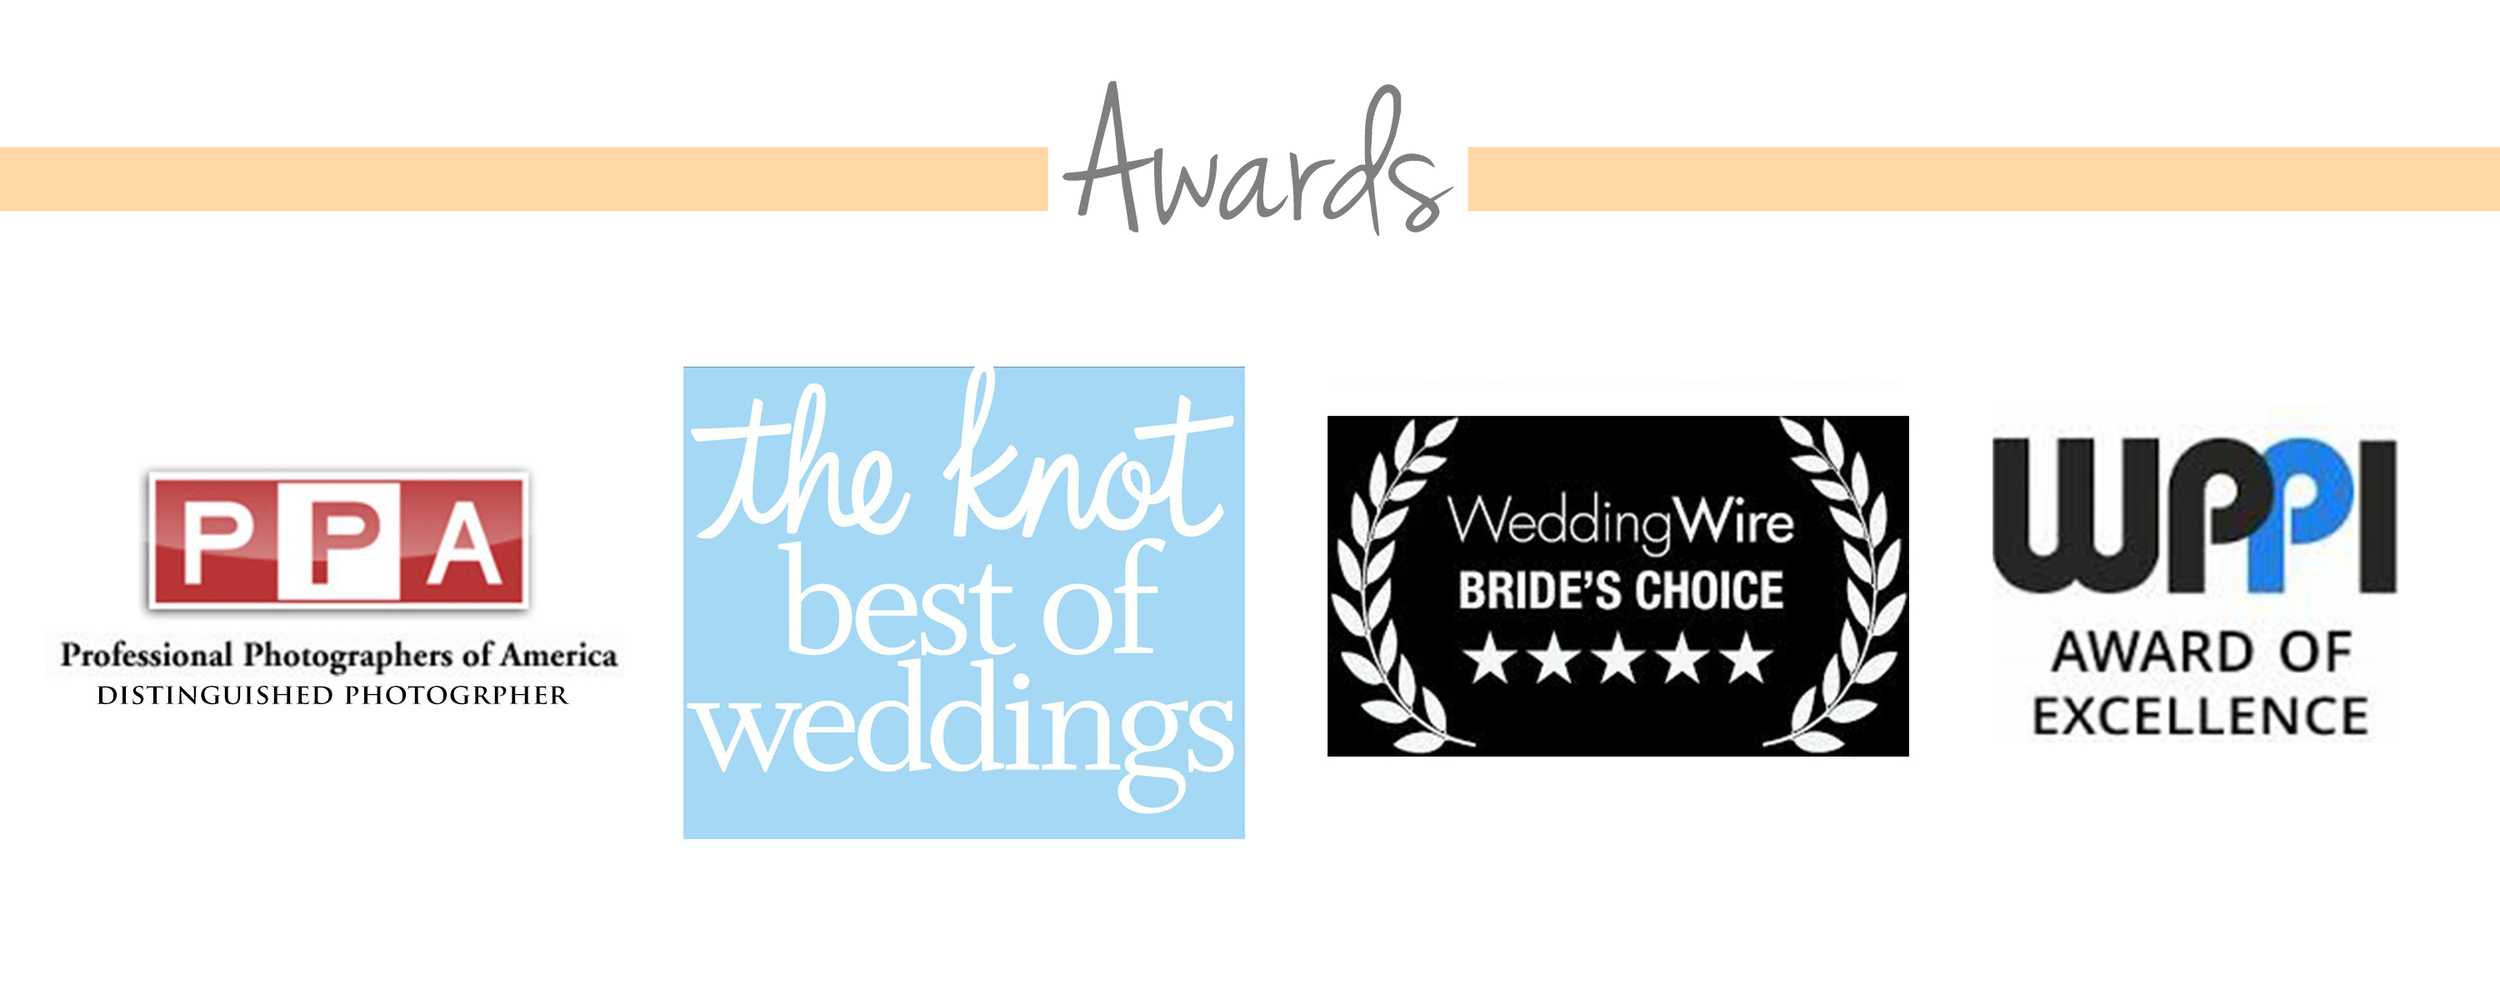 Absolute-Photography-Wedding-Awards